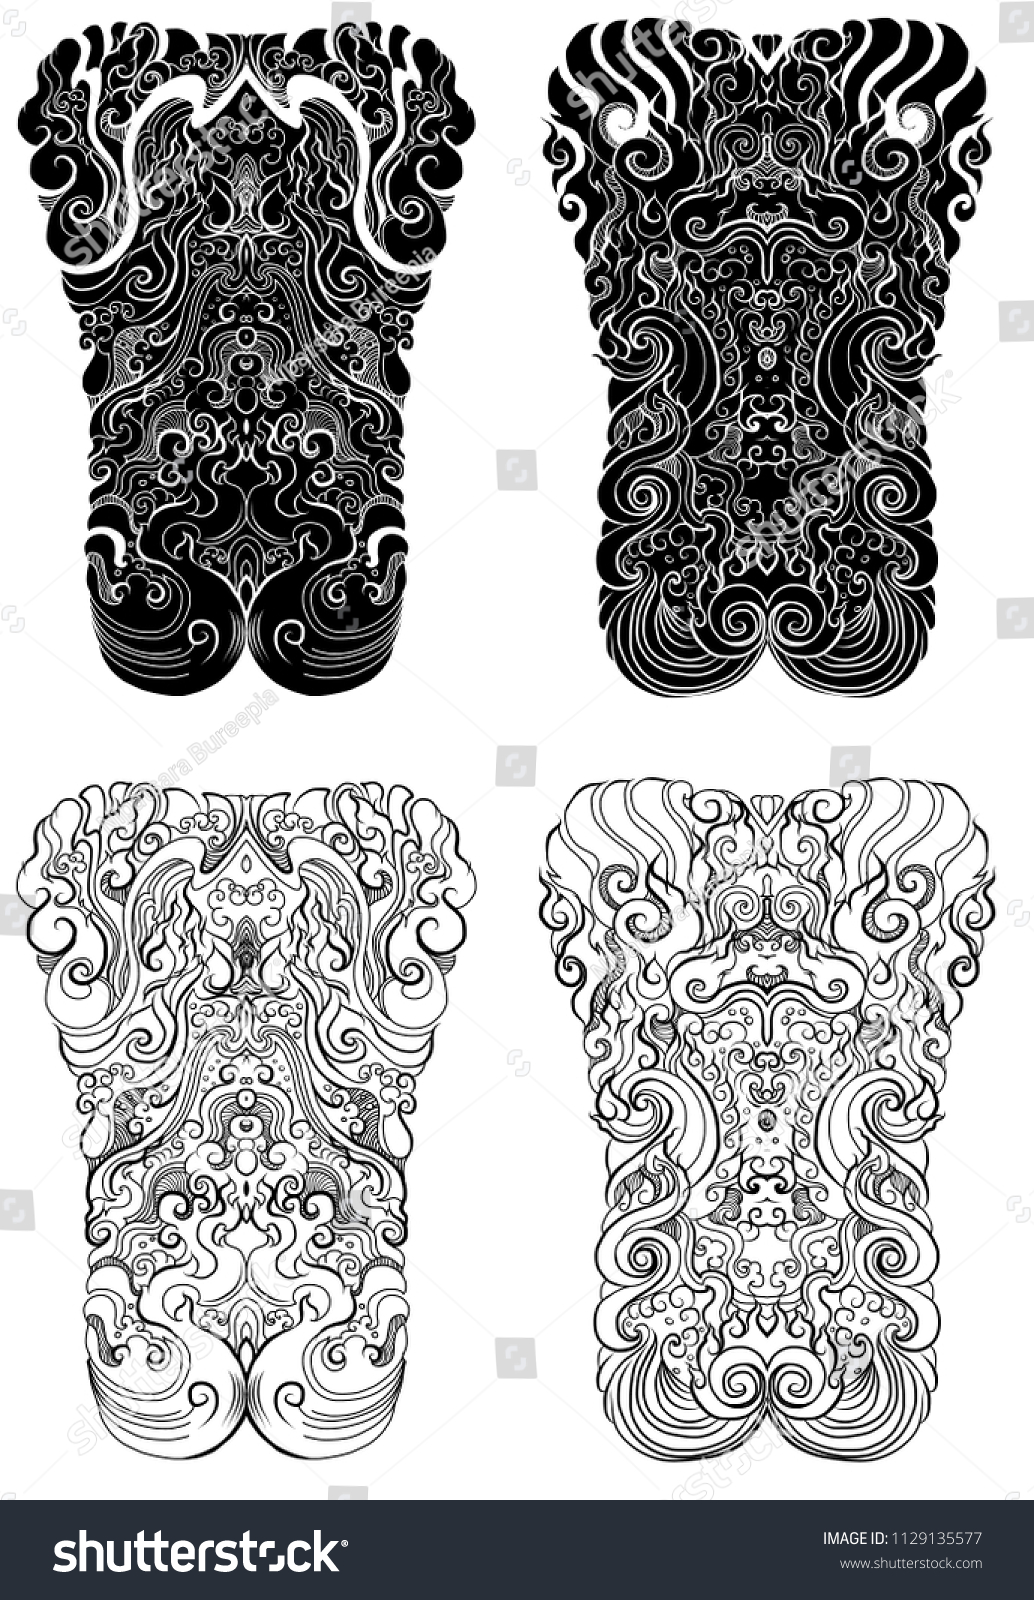 4f91c11761ddb Line Thai tattoo design.traditional thailand style,cloud and fire tattoo.Line  Thai water wave design for tattoo.Japanese wave for tattoo background.